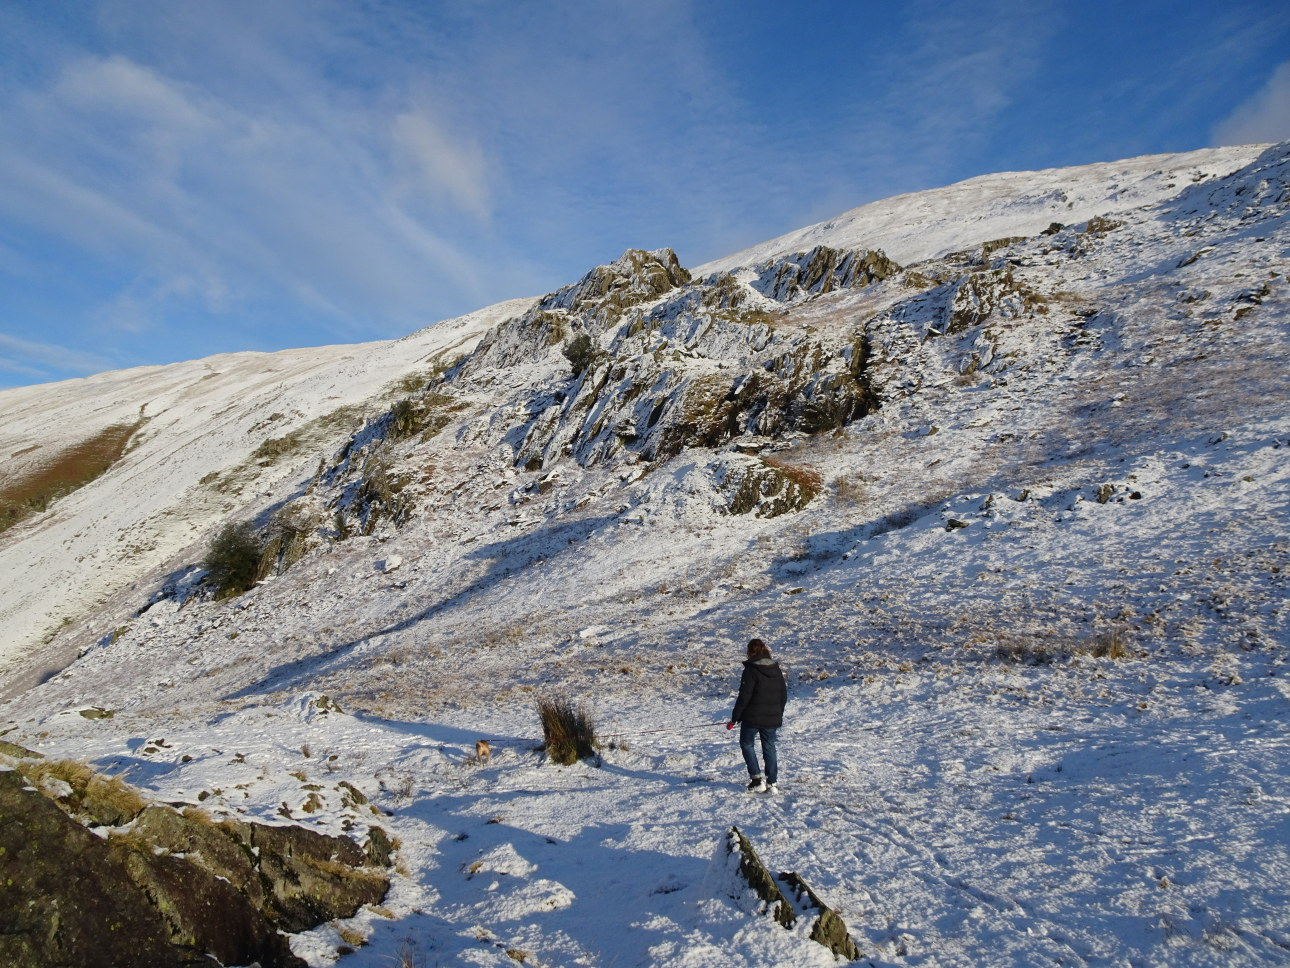 Heading down – these crags are marked as Butter Crags on the OS map (but they aren't). Taken at 3:01pm.